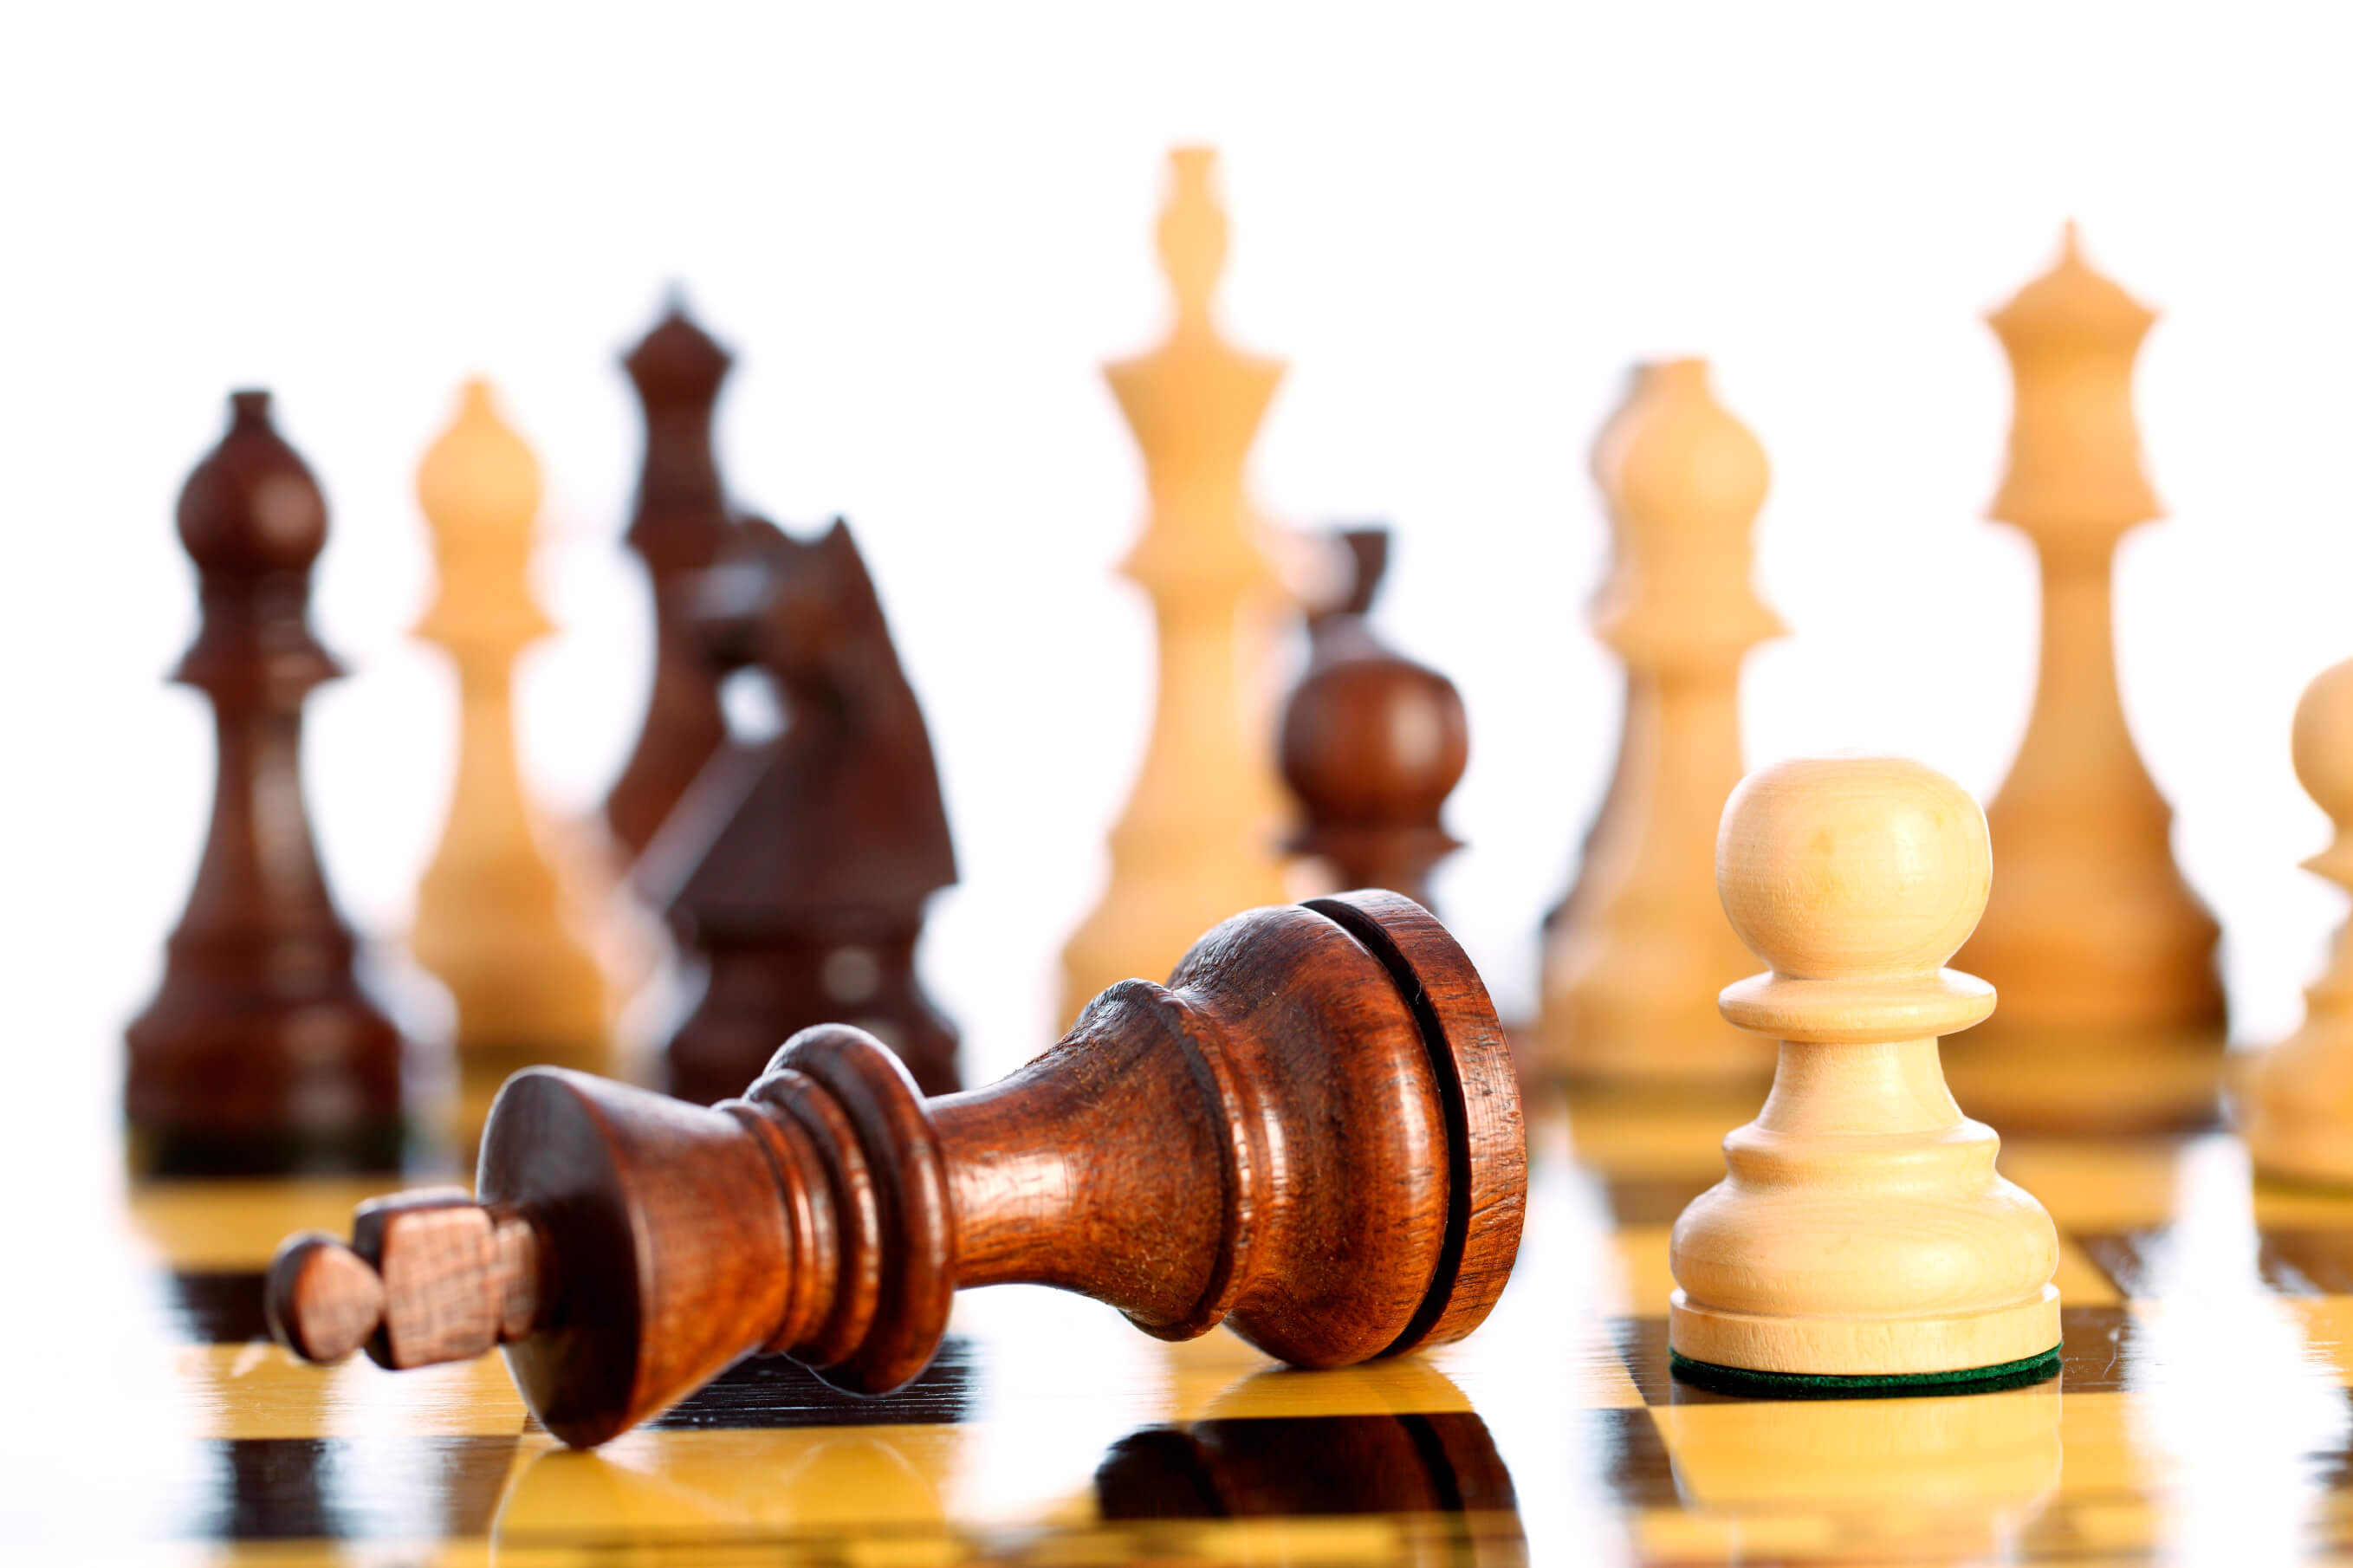 Chess game comes to an end when the king is checkmated